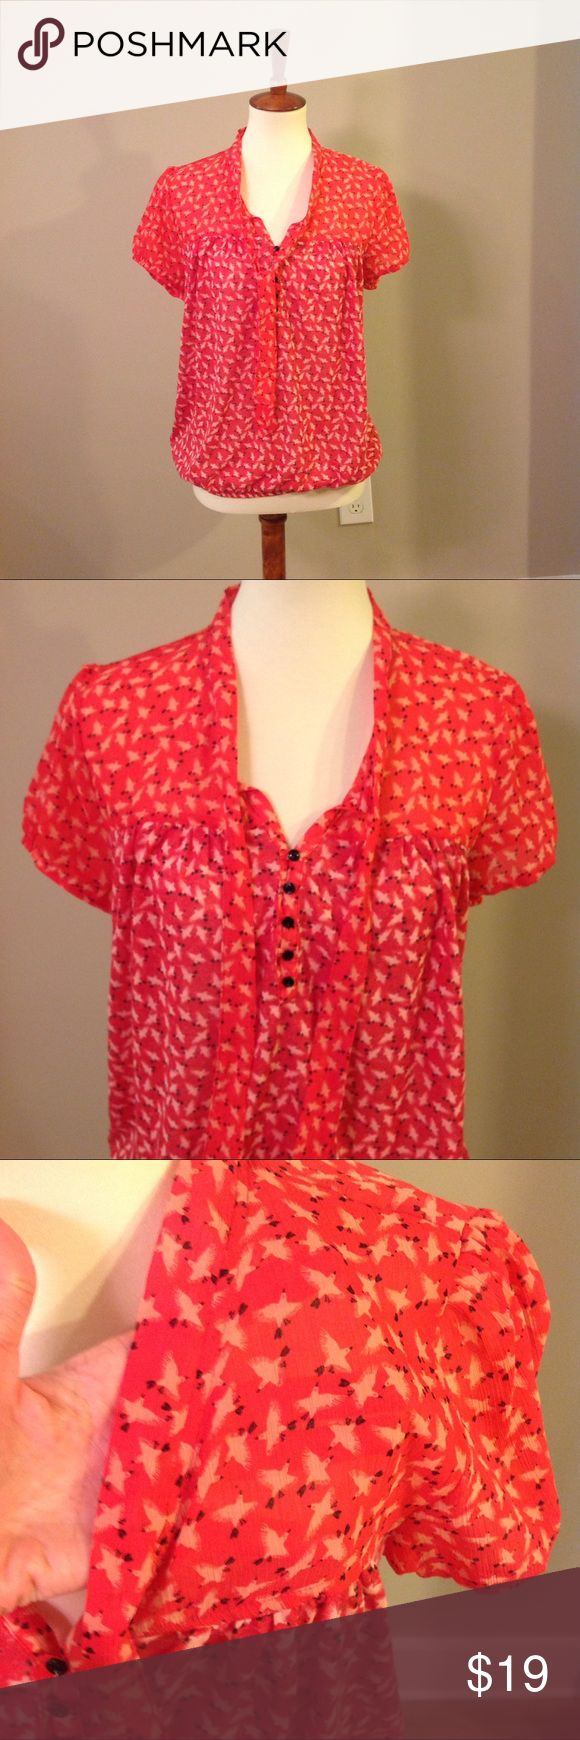 LOFT Red Short Sleeve Top w/Tie This is a cute Loft top with short sleeves and print of small birds. Neckline has small buttons and tie detail. Top section of shirt and sleeves are somewhat see through shown in picture 3. Elastic hem at the bottom. LOFT Tops Blouses